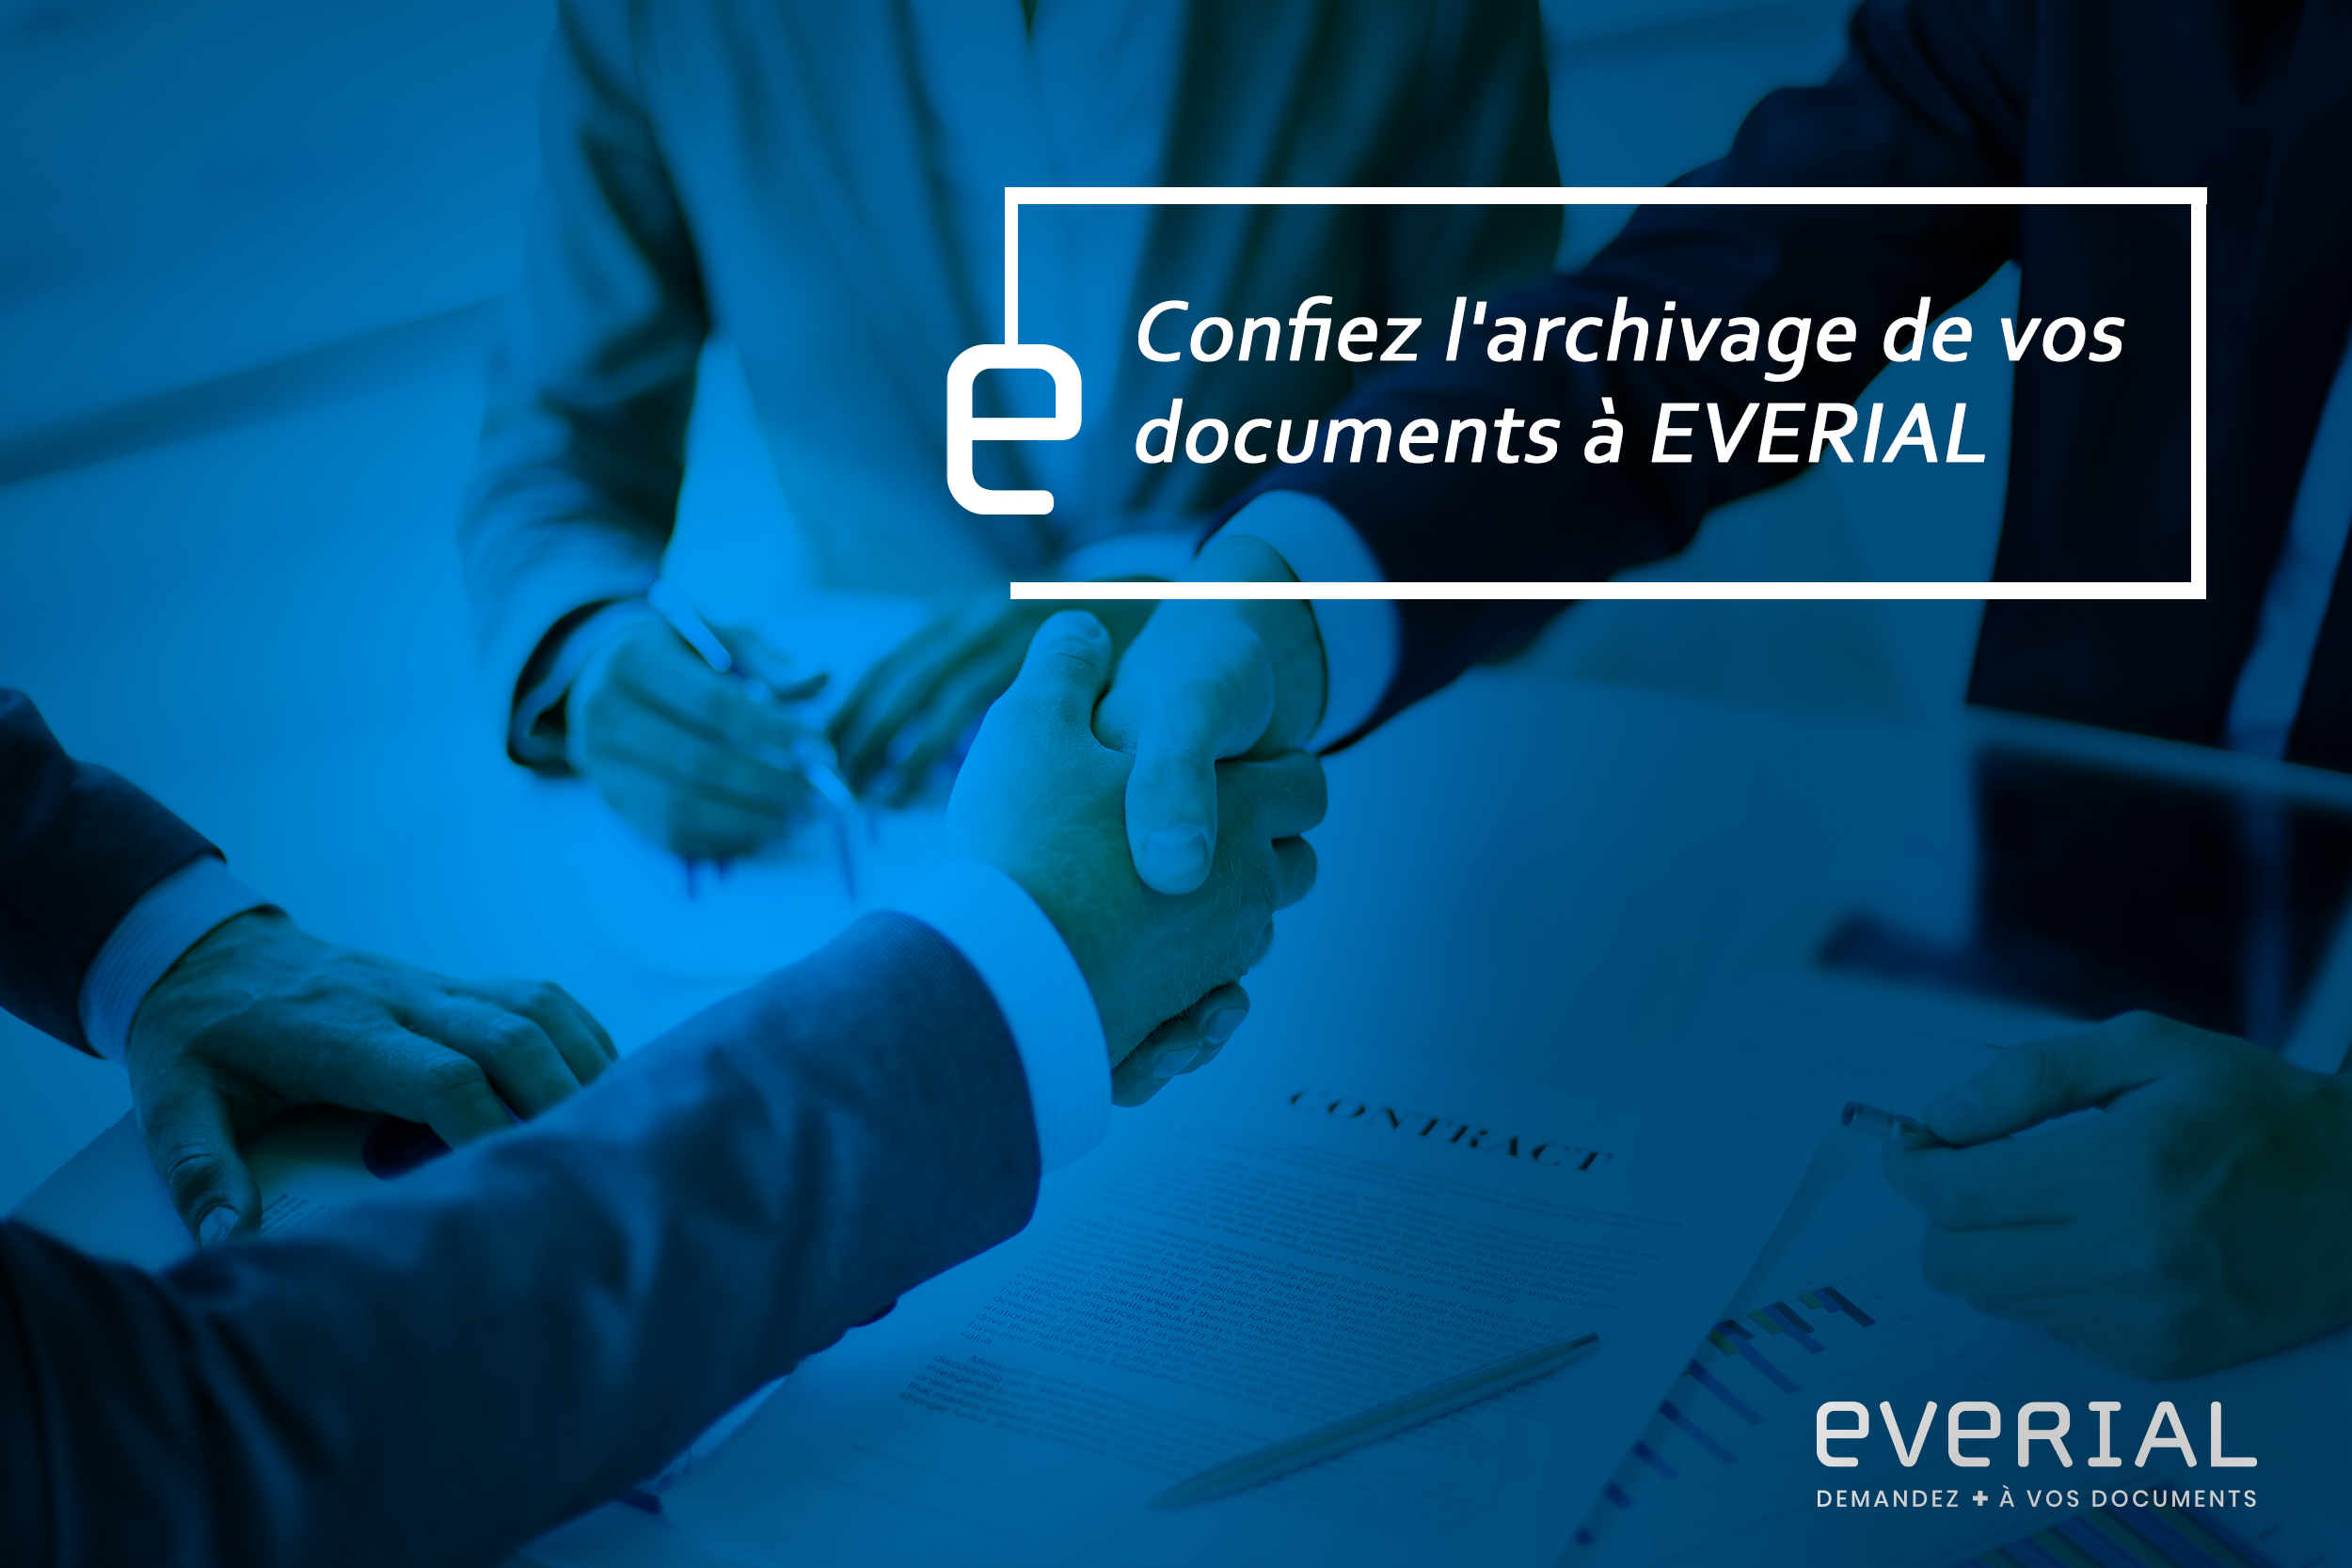 Everial Archivage